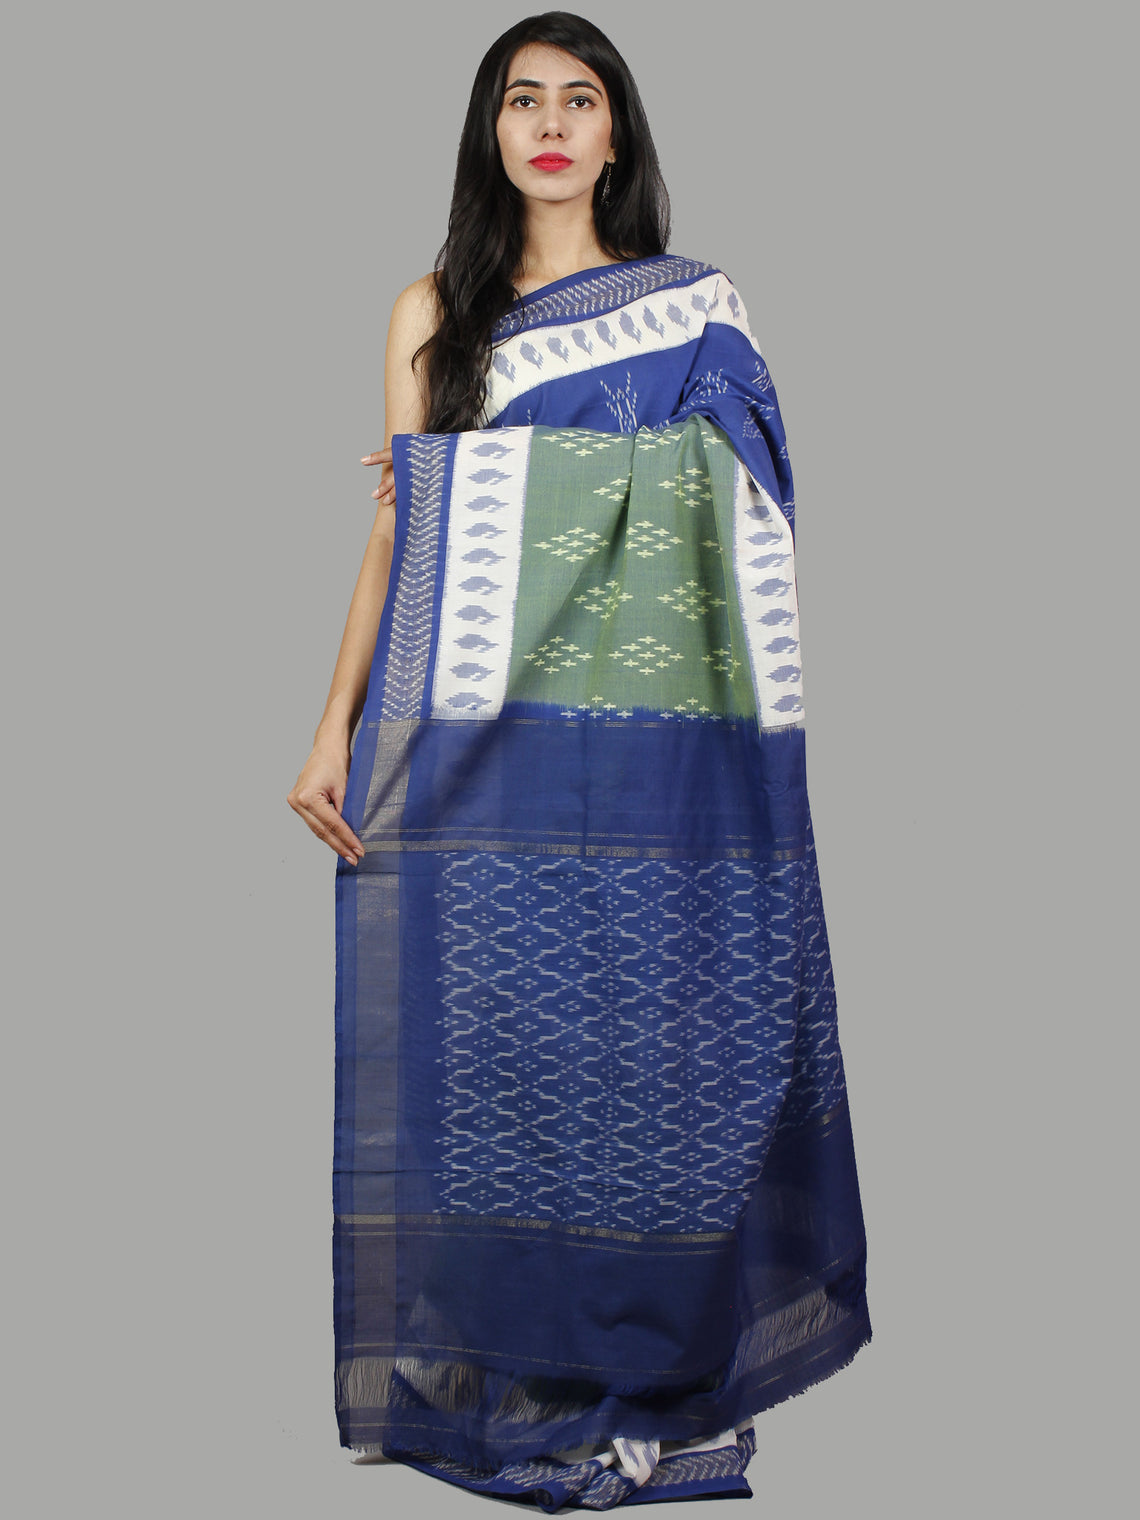 Blue Green Grey Ivory Ikat Handwoven Pochampally Mercerized Cotton Saree - S031701447